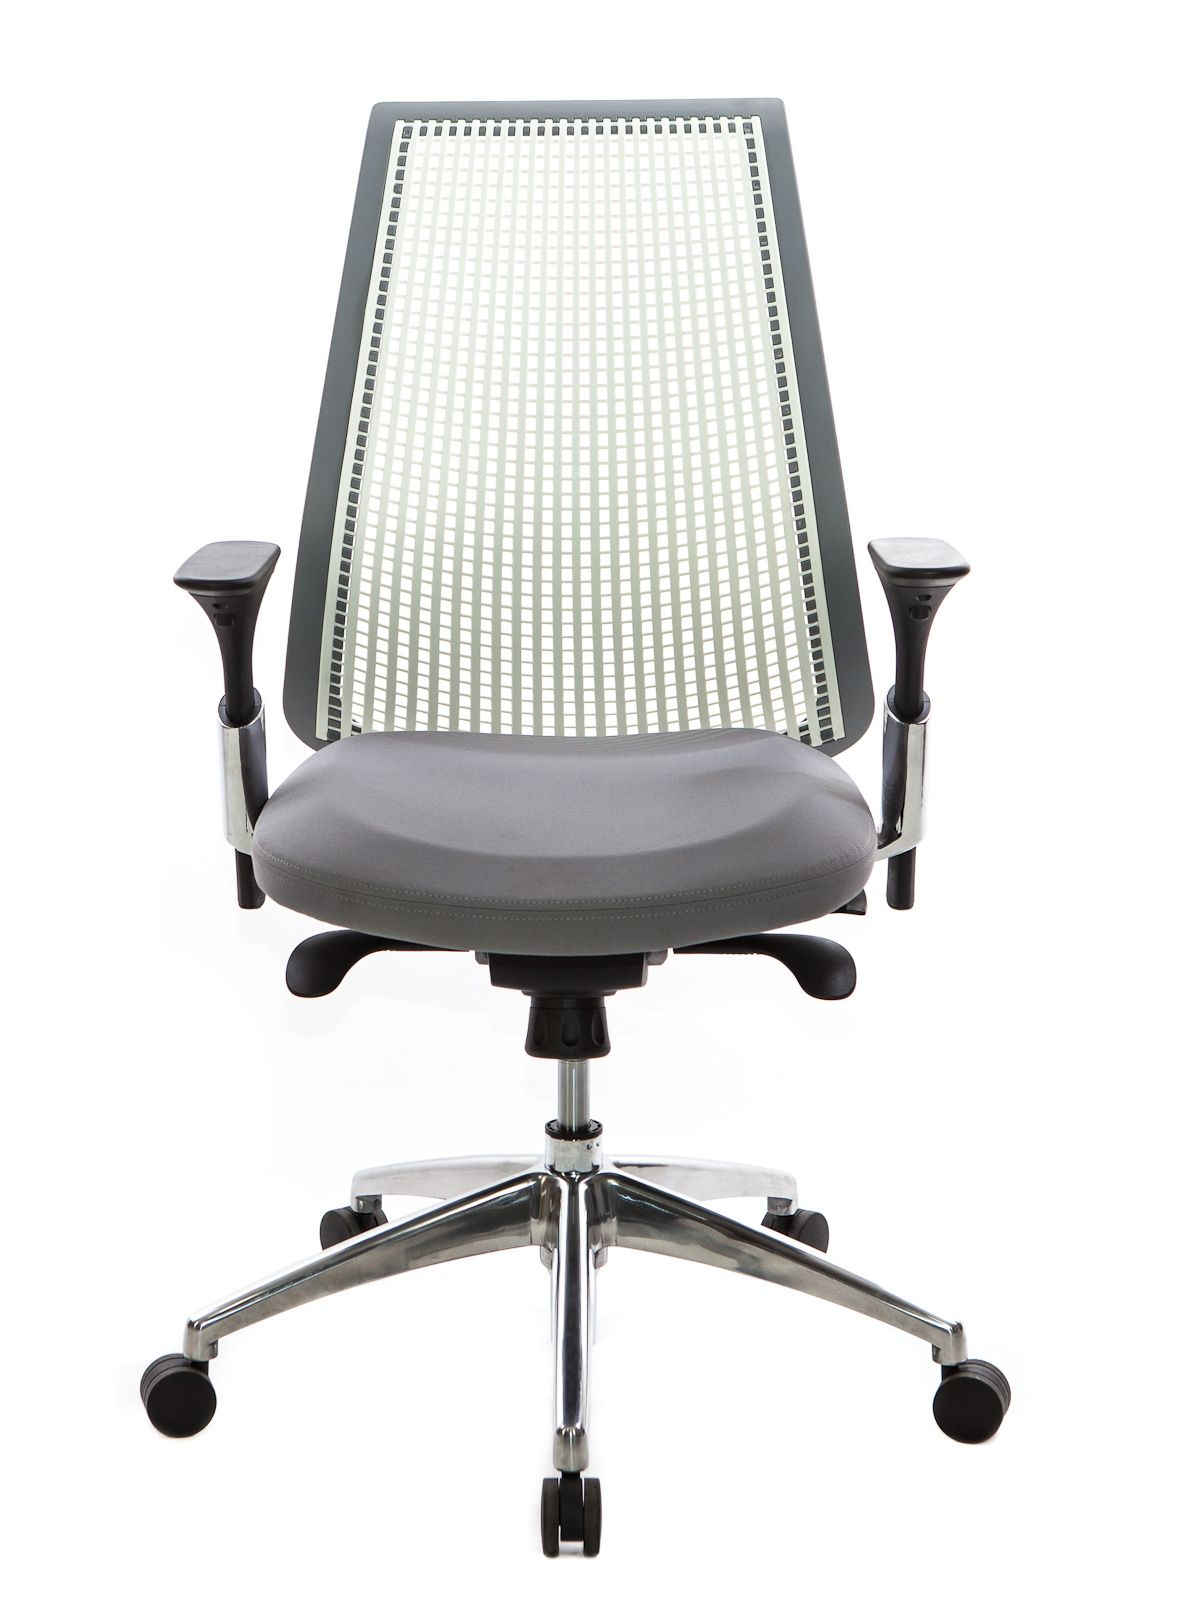 8 Series Chair From theOffice Mesh office chair, Work chair